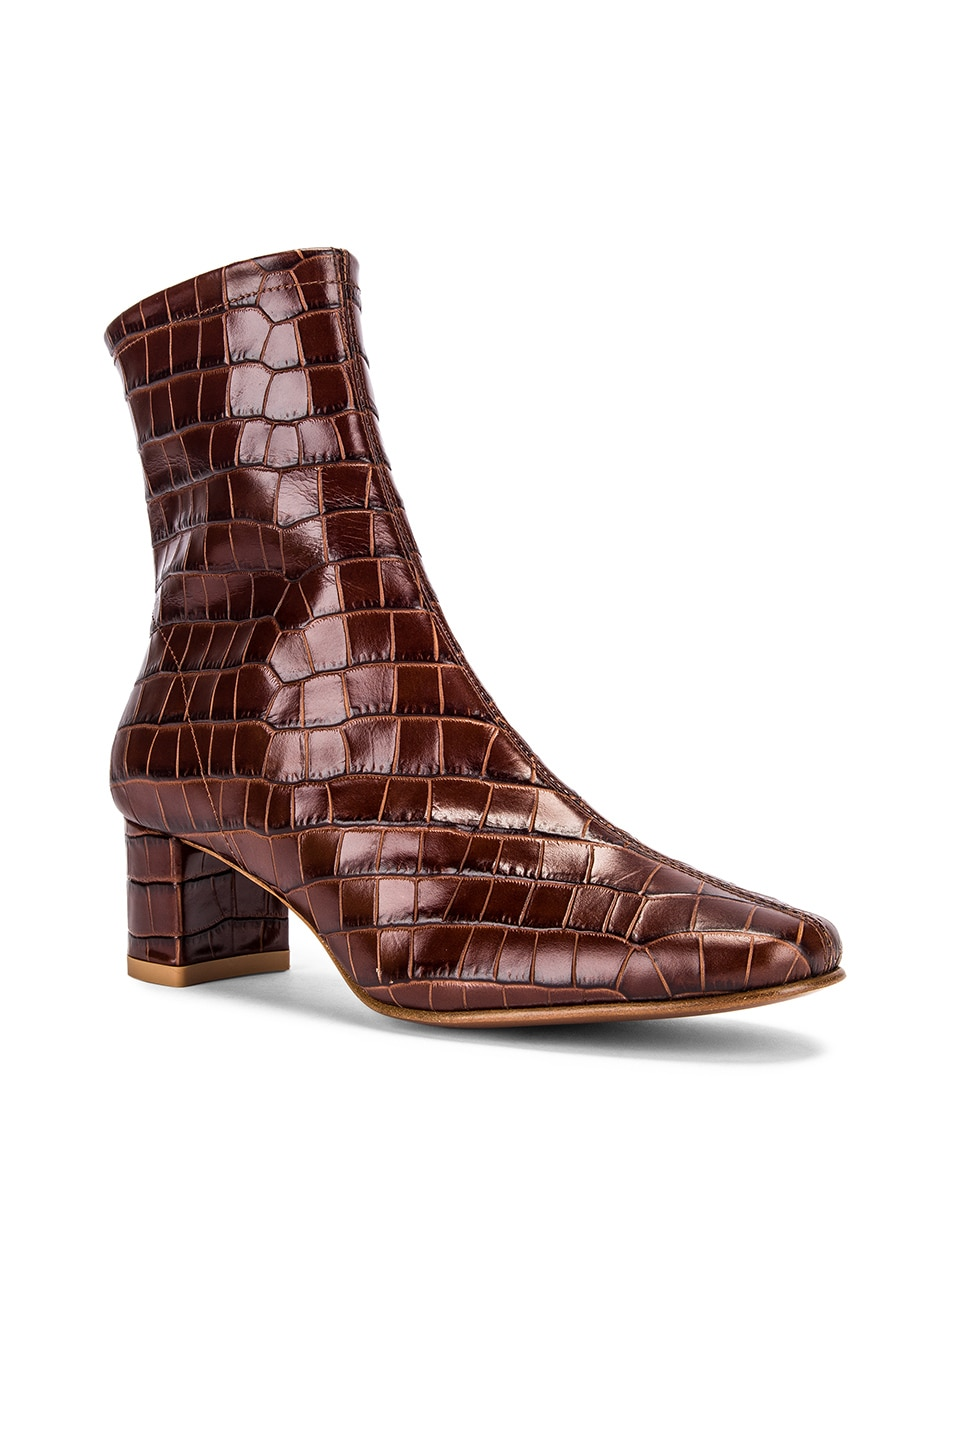 Image 2 of BY FAR Sofia Croco Embossed Leather Boot in Nutella